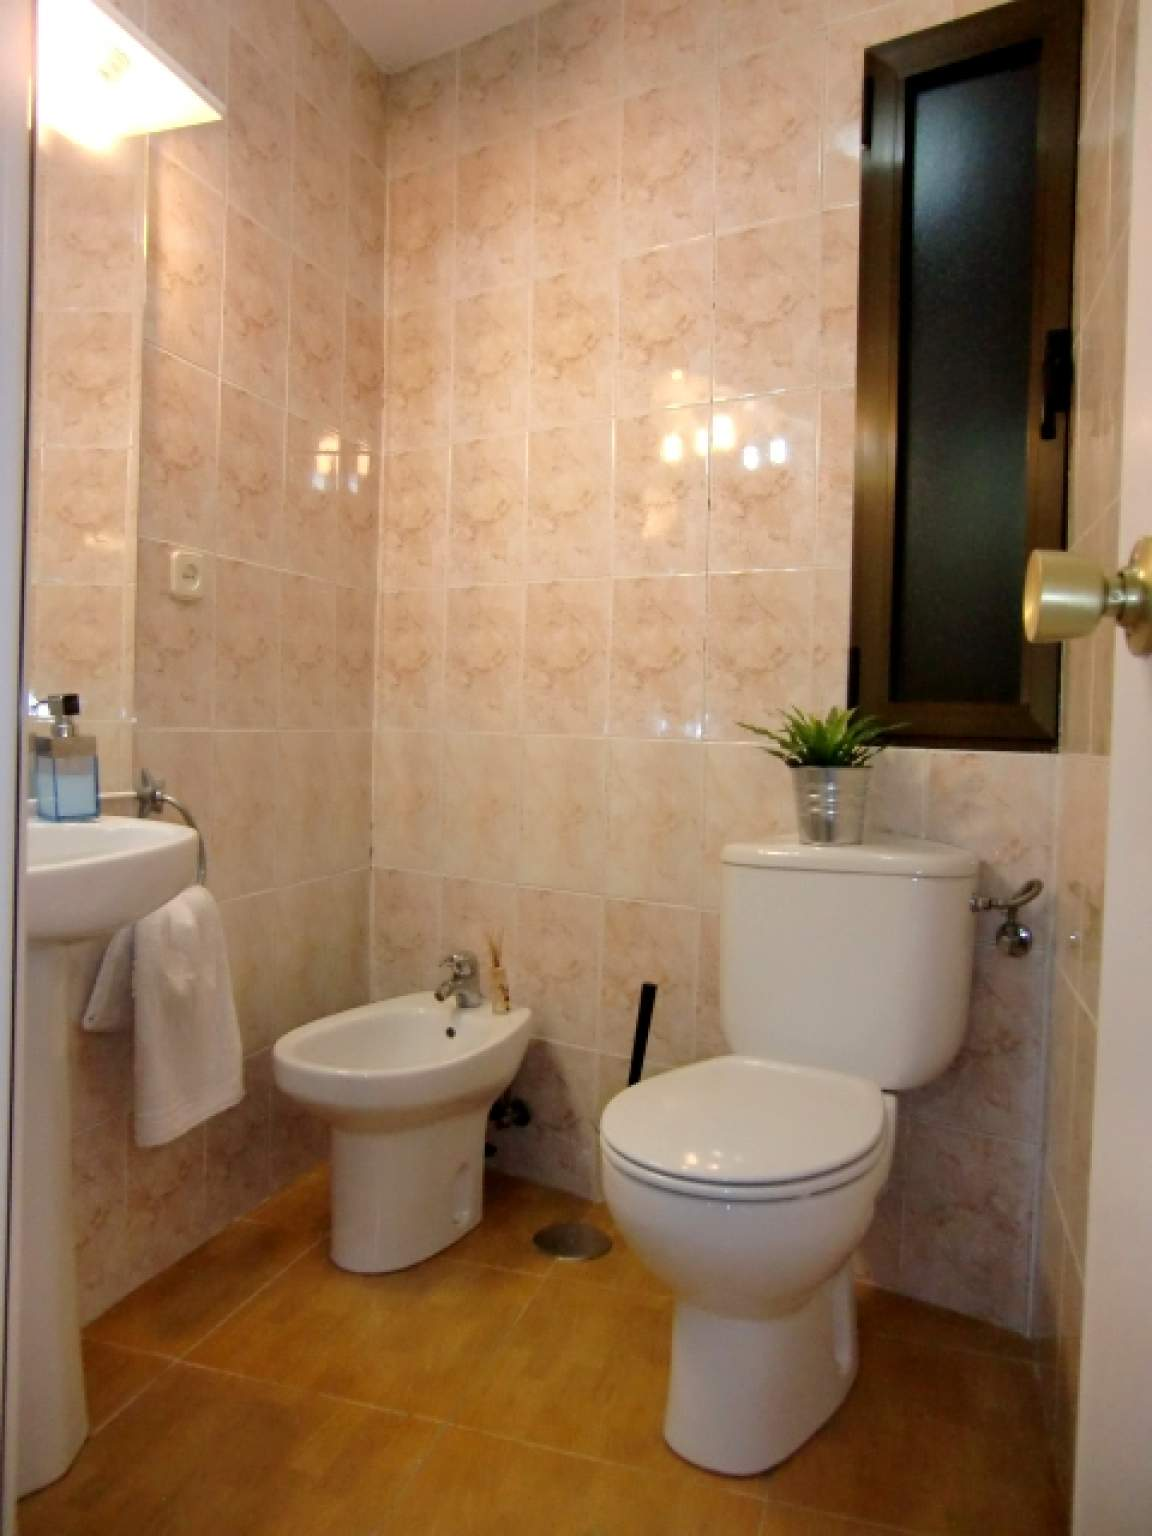 Bathroom of Bedroom 5